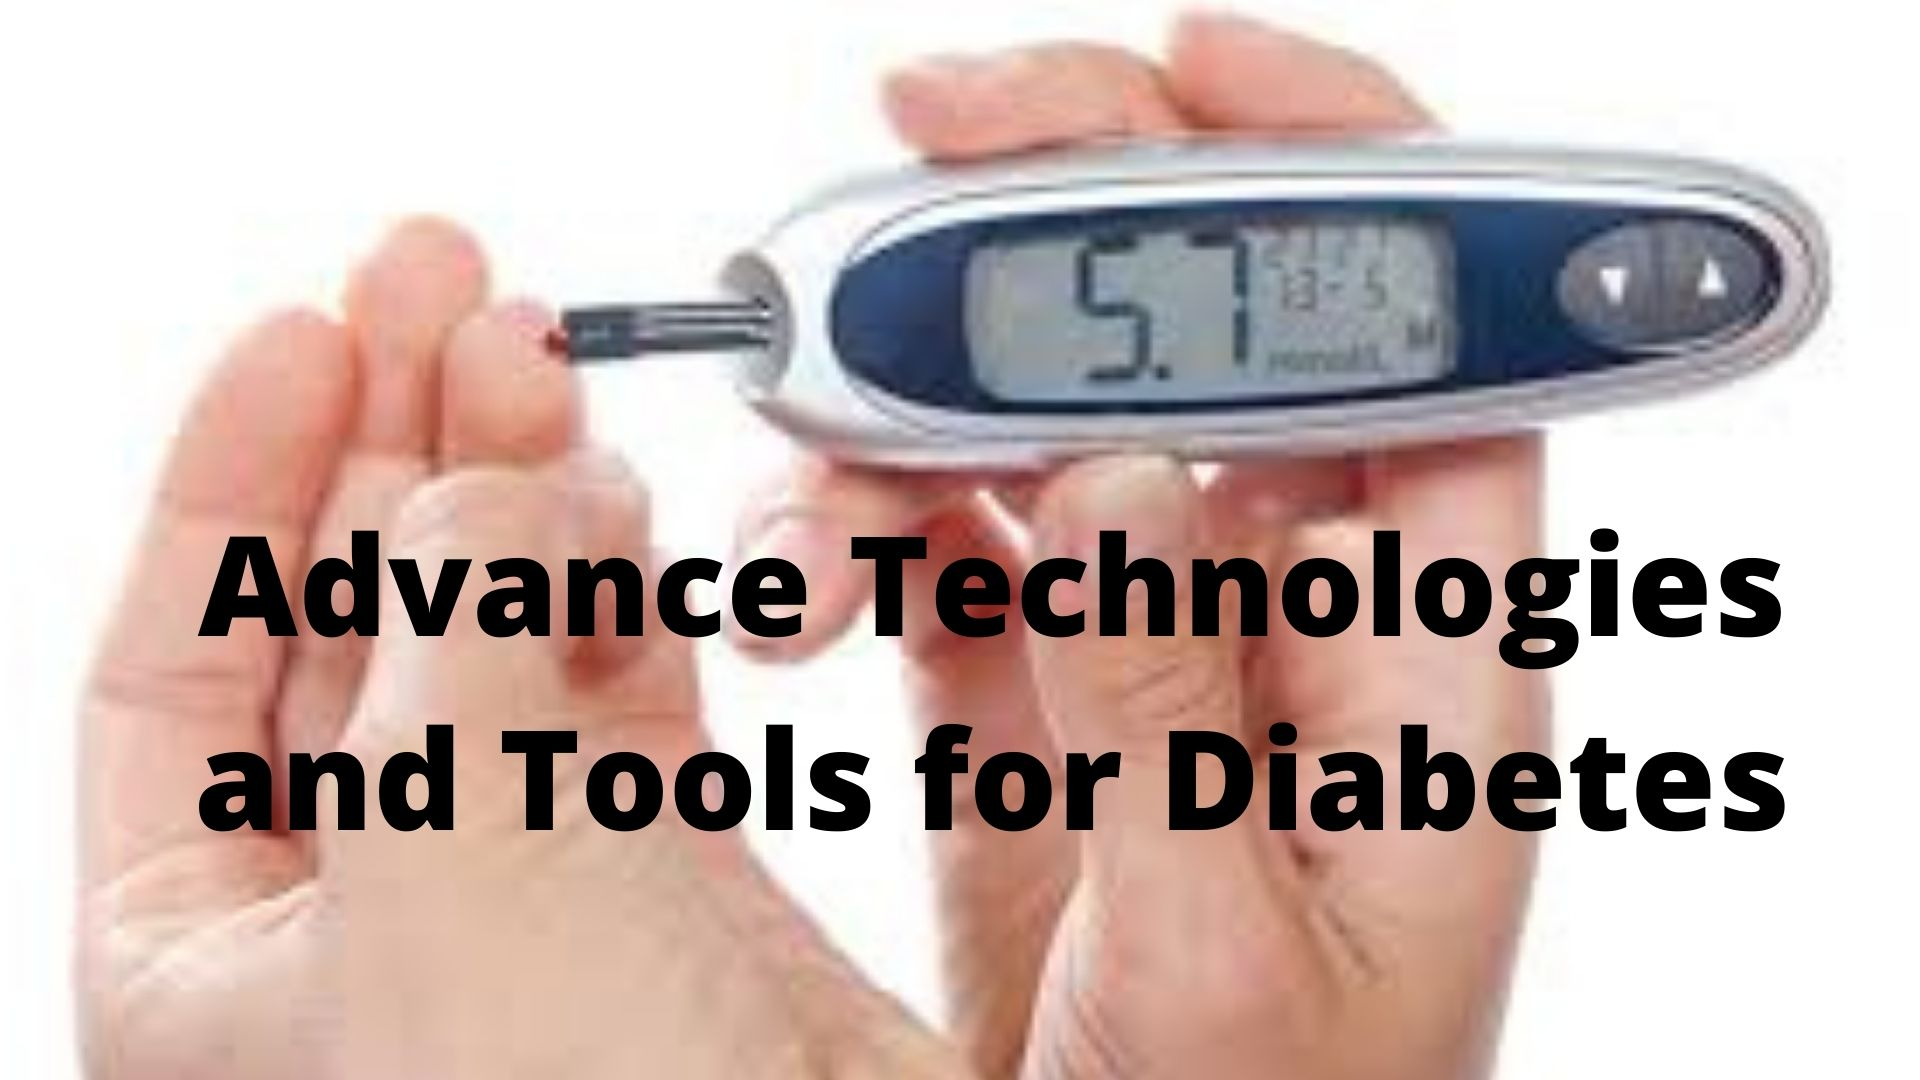 Advance Technologies and Tools for Diabetes Photo